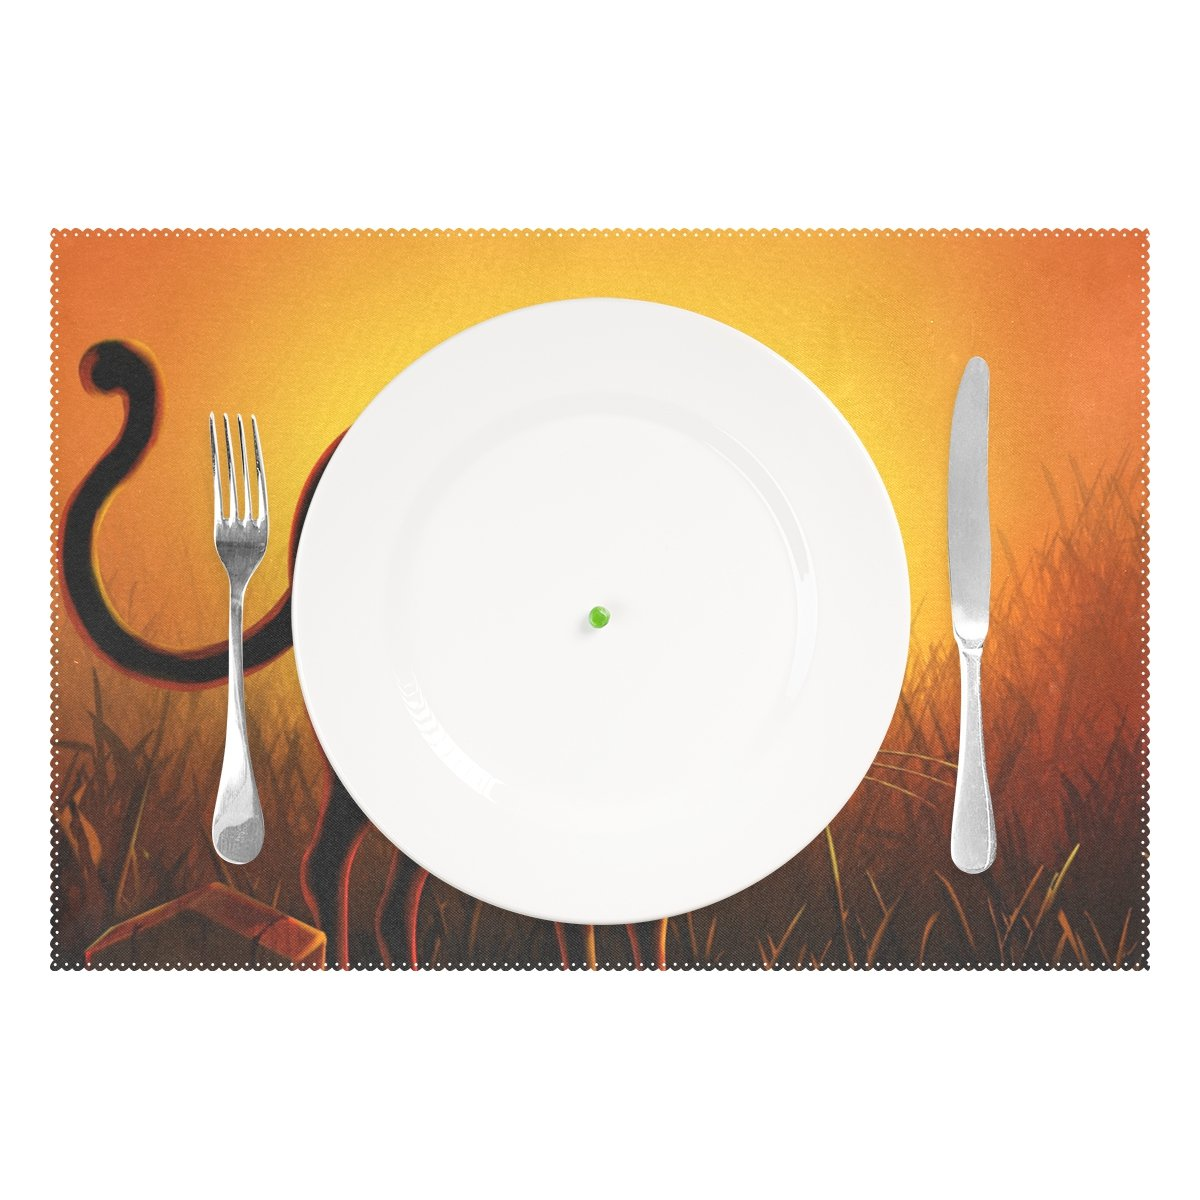 Halloween Black Cat Print Placemats, ALIREA Heat-resistant Placemats Stain Resistant Anti-skid Washable Polyester Table Mats Non Slip Easy Clean Placemats, 12''x18'', Set of 4 by ALIREA (Image #2)